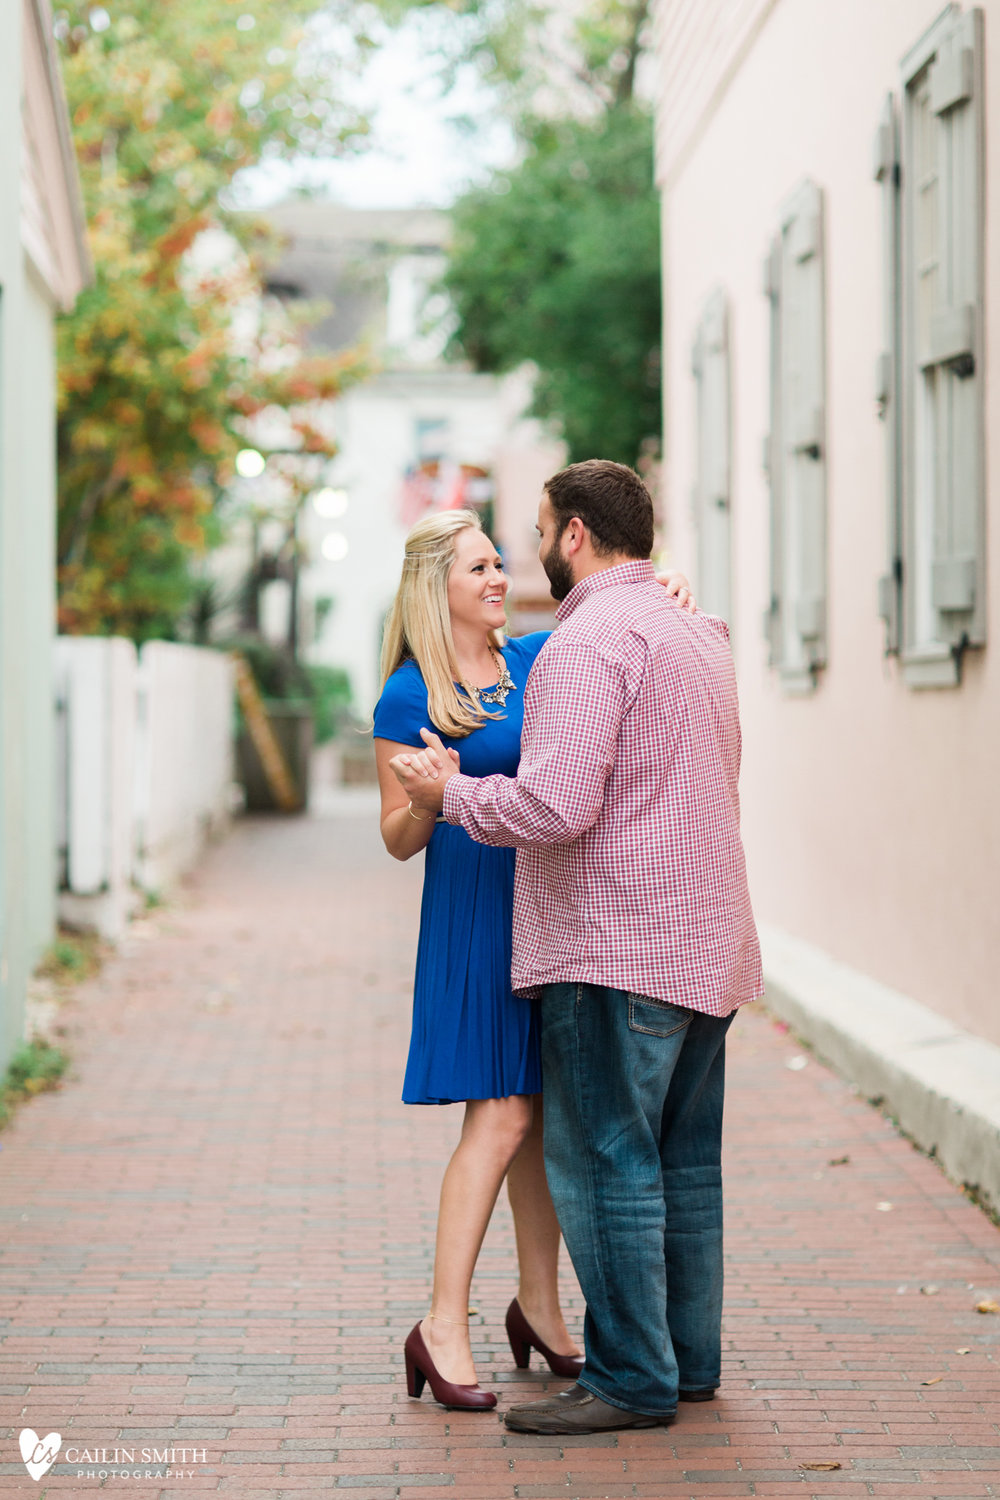 Shari_Brent_St_Augustine_Engagement_Photography_013.jpg